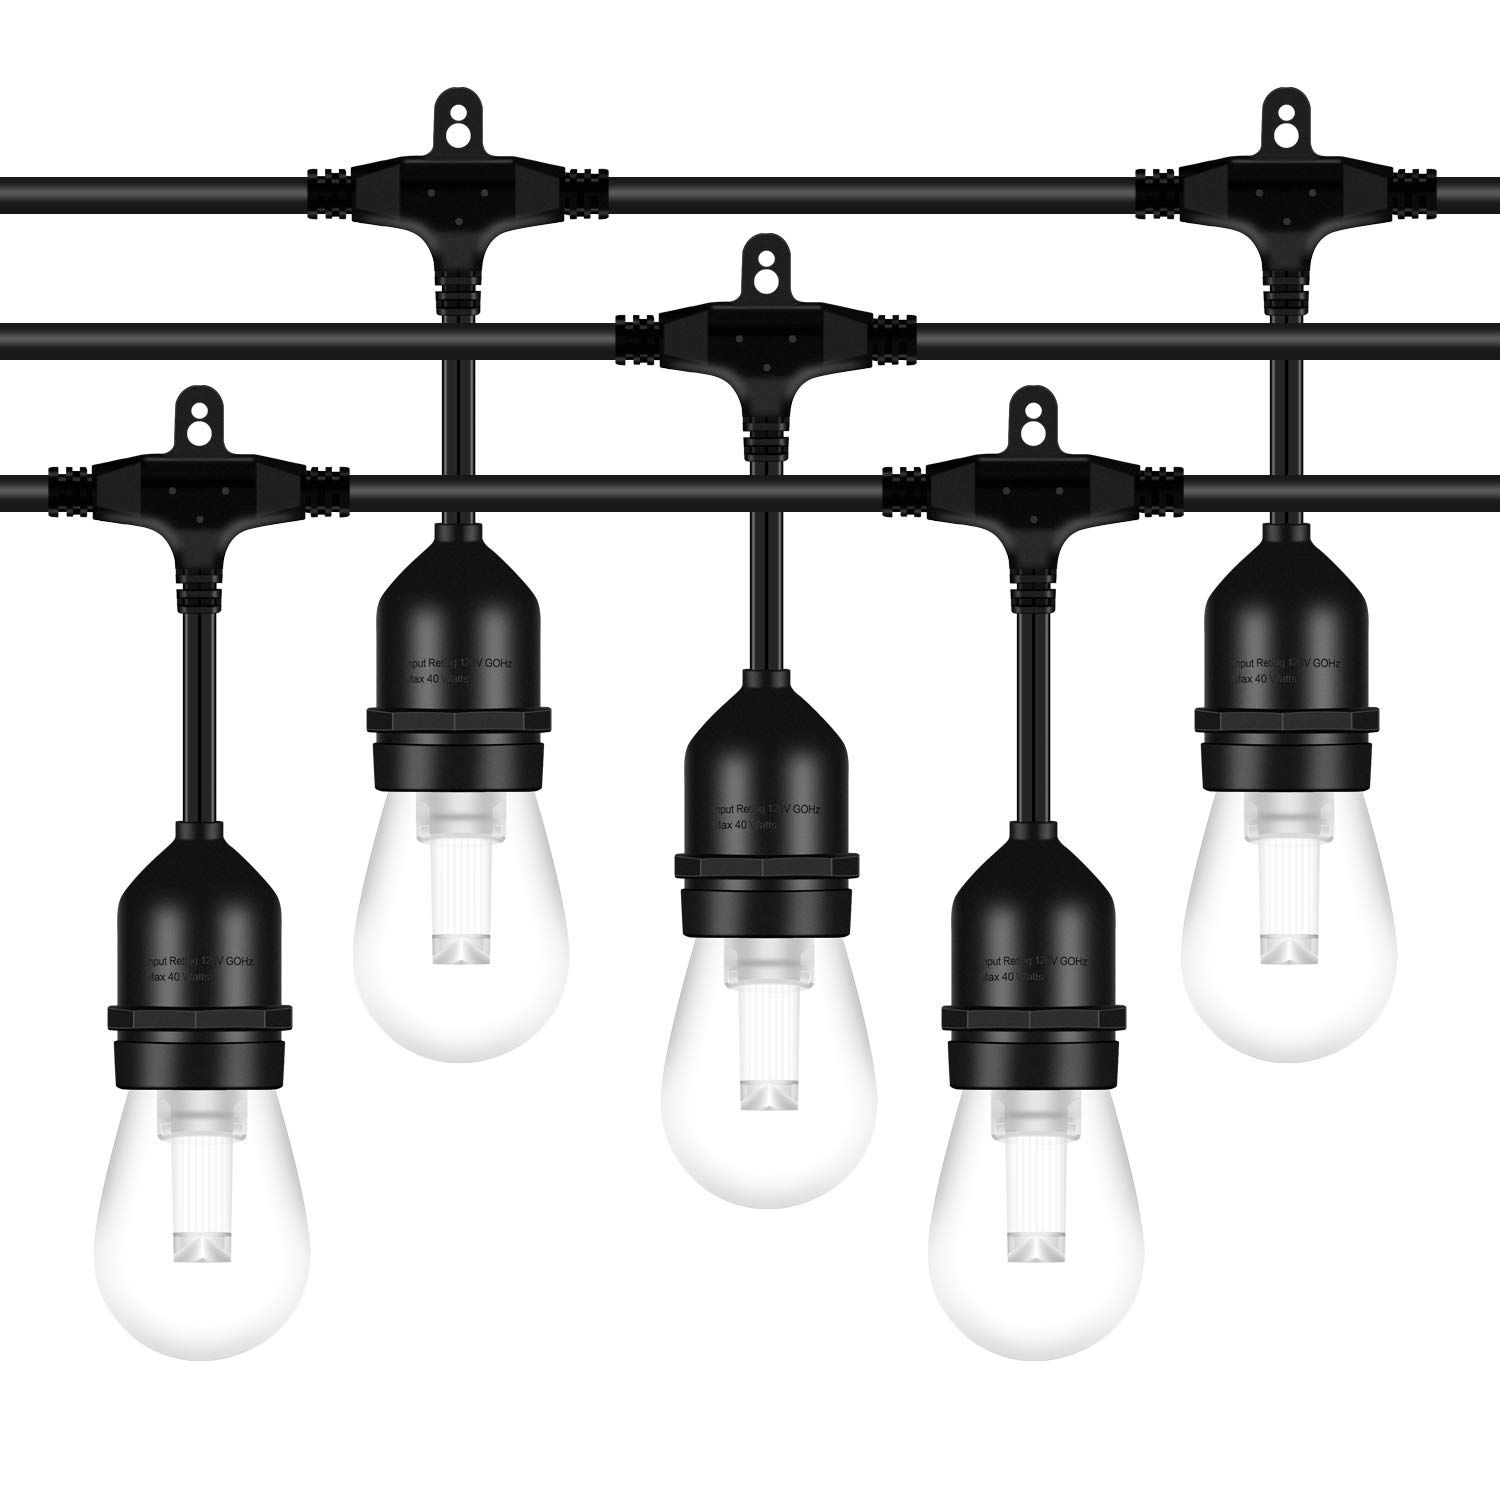 AntLux 52FT LED Outdoor String Lights - 2W Dimmable Vintage Edison Bulbs - Heavy Duty Cord 18 x E26 Hanging Sockets - Commercial Grade Waterproof Patio Lighting for Bistro Porch Garden Backyard Party